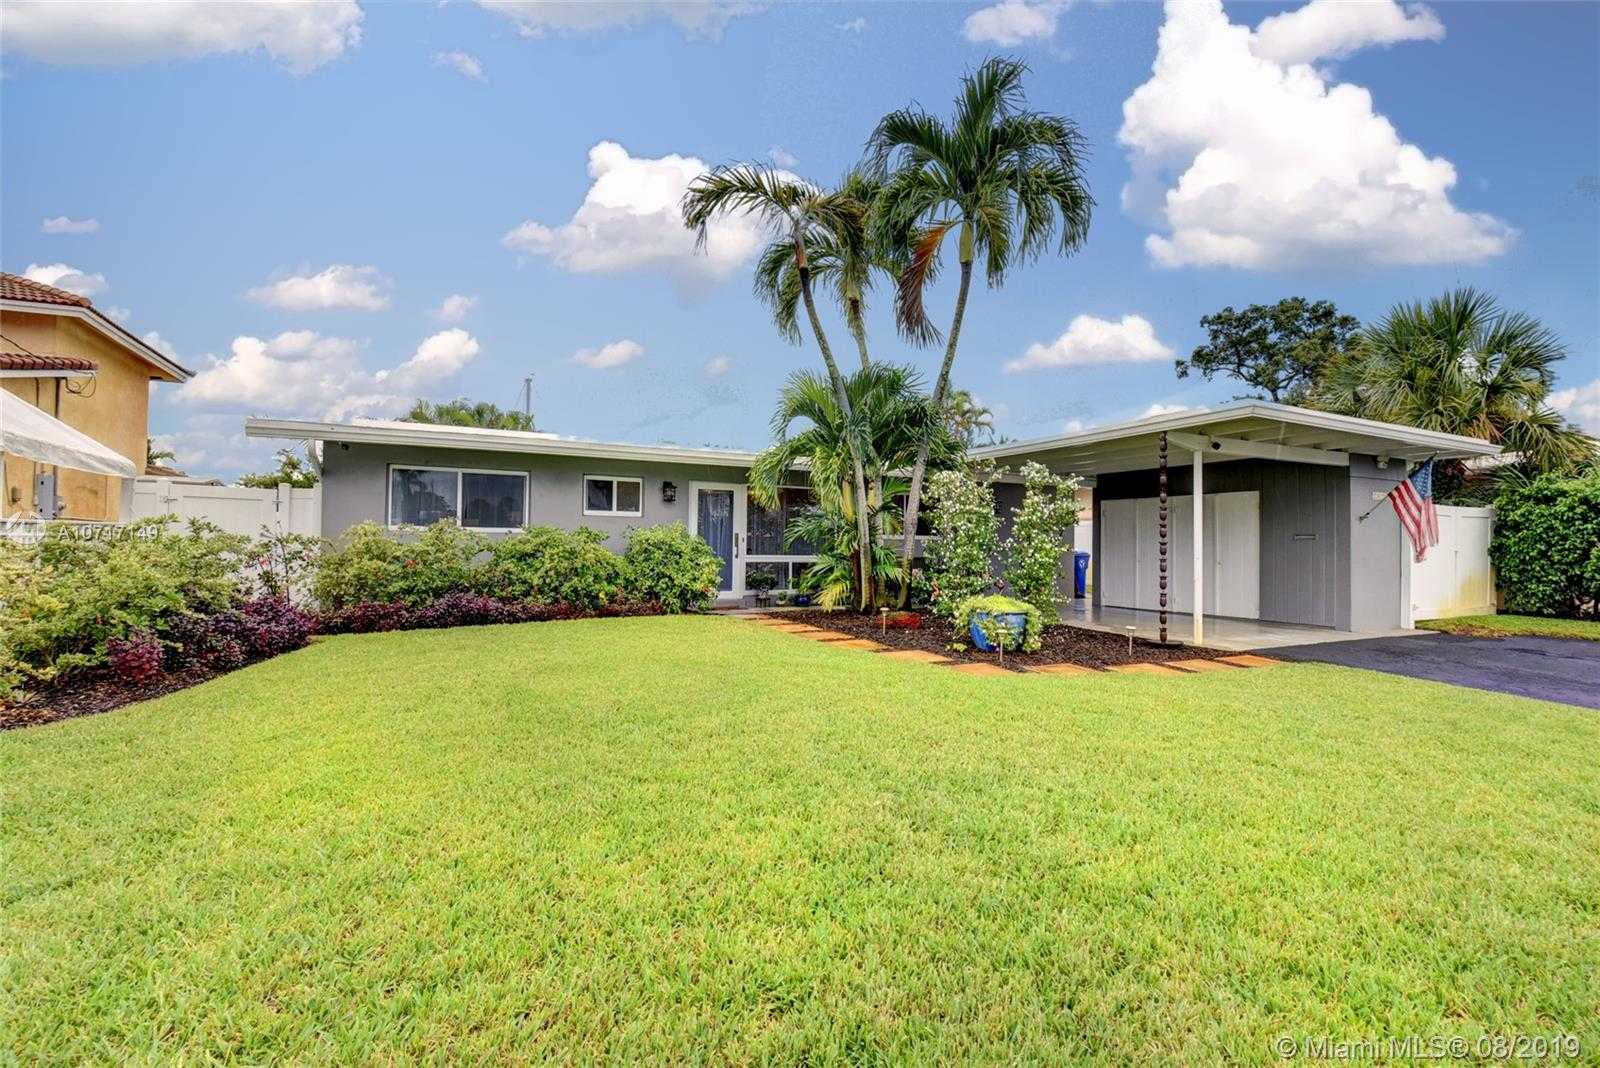 $539,500 - 3Br/2Ba -  for Sale in Lauderdale Isles No 2-blk, Fort Lauderdale